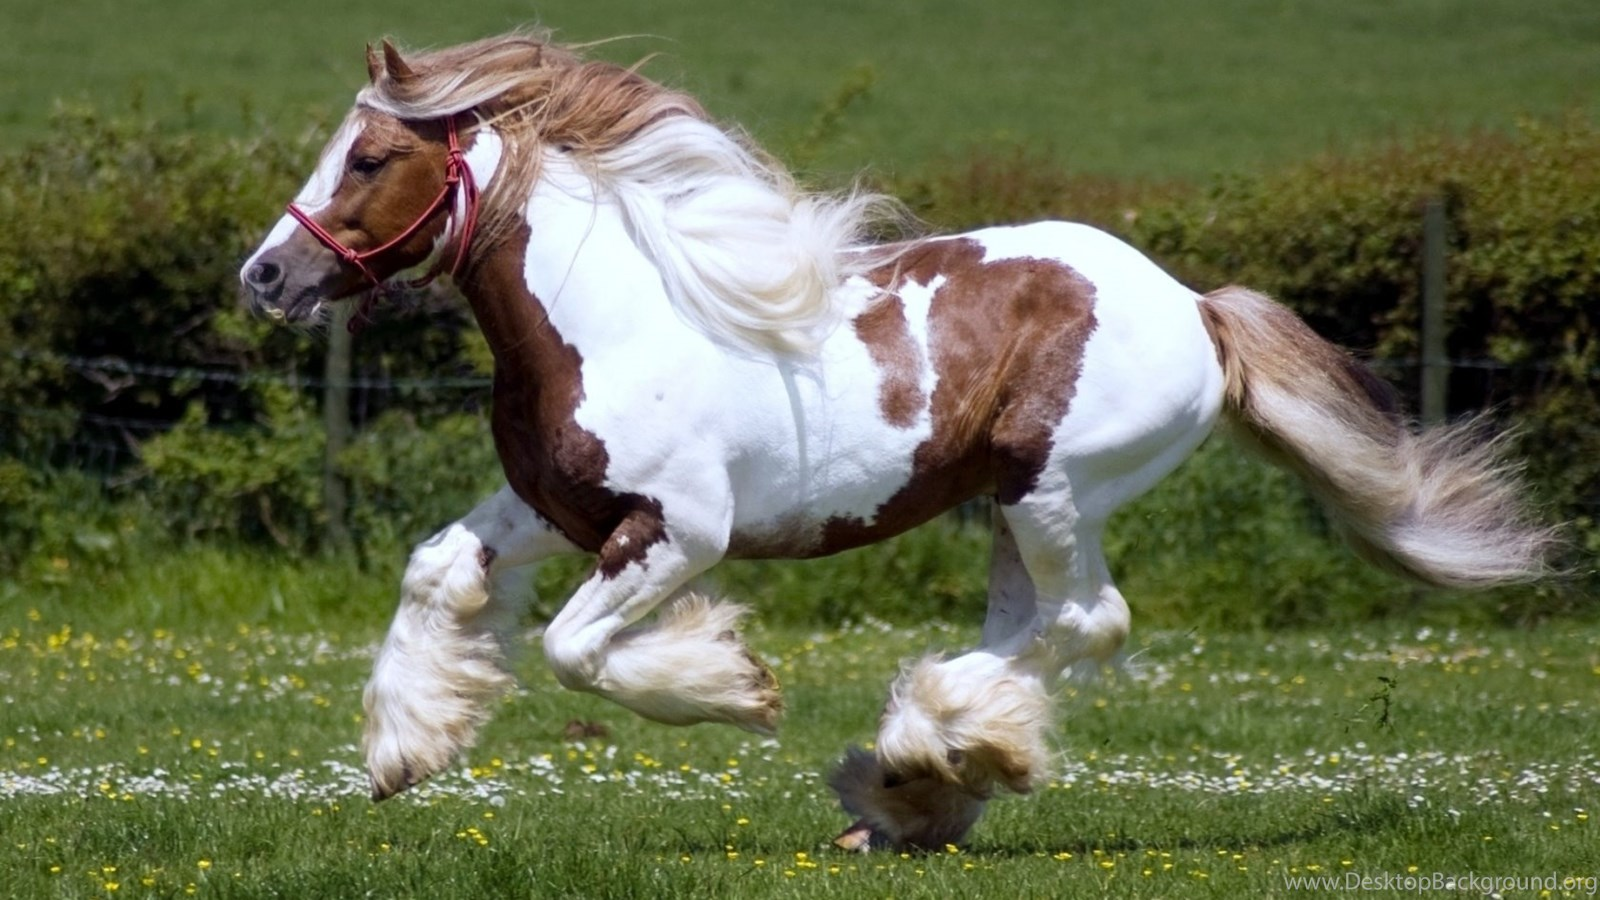 Running Horse Hd Wallpapers Download High Quality Wallpapers Free Desktop Background